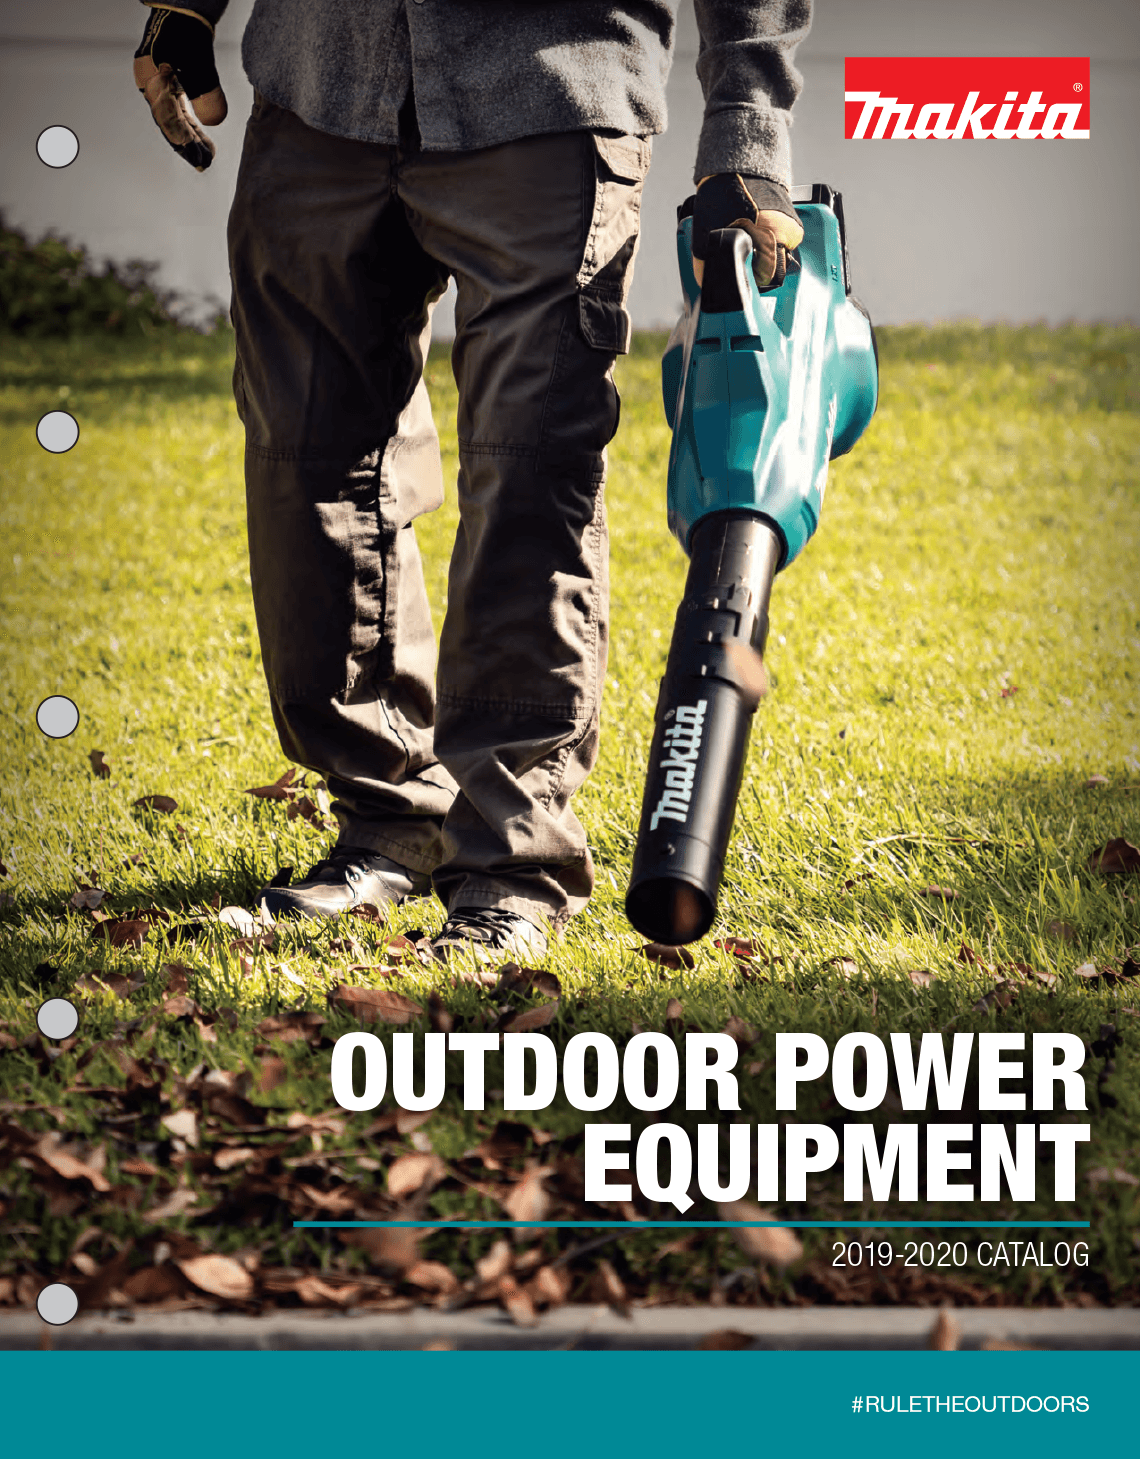 Makita 2019-2020 Catalog